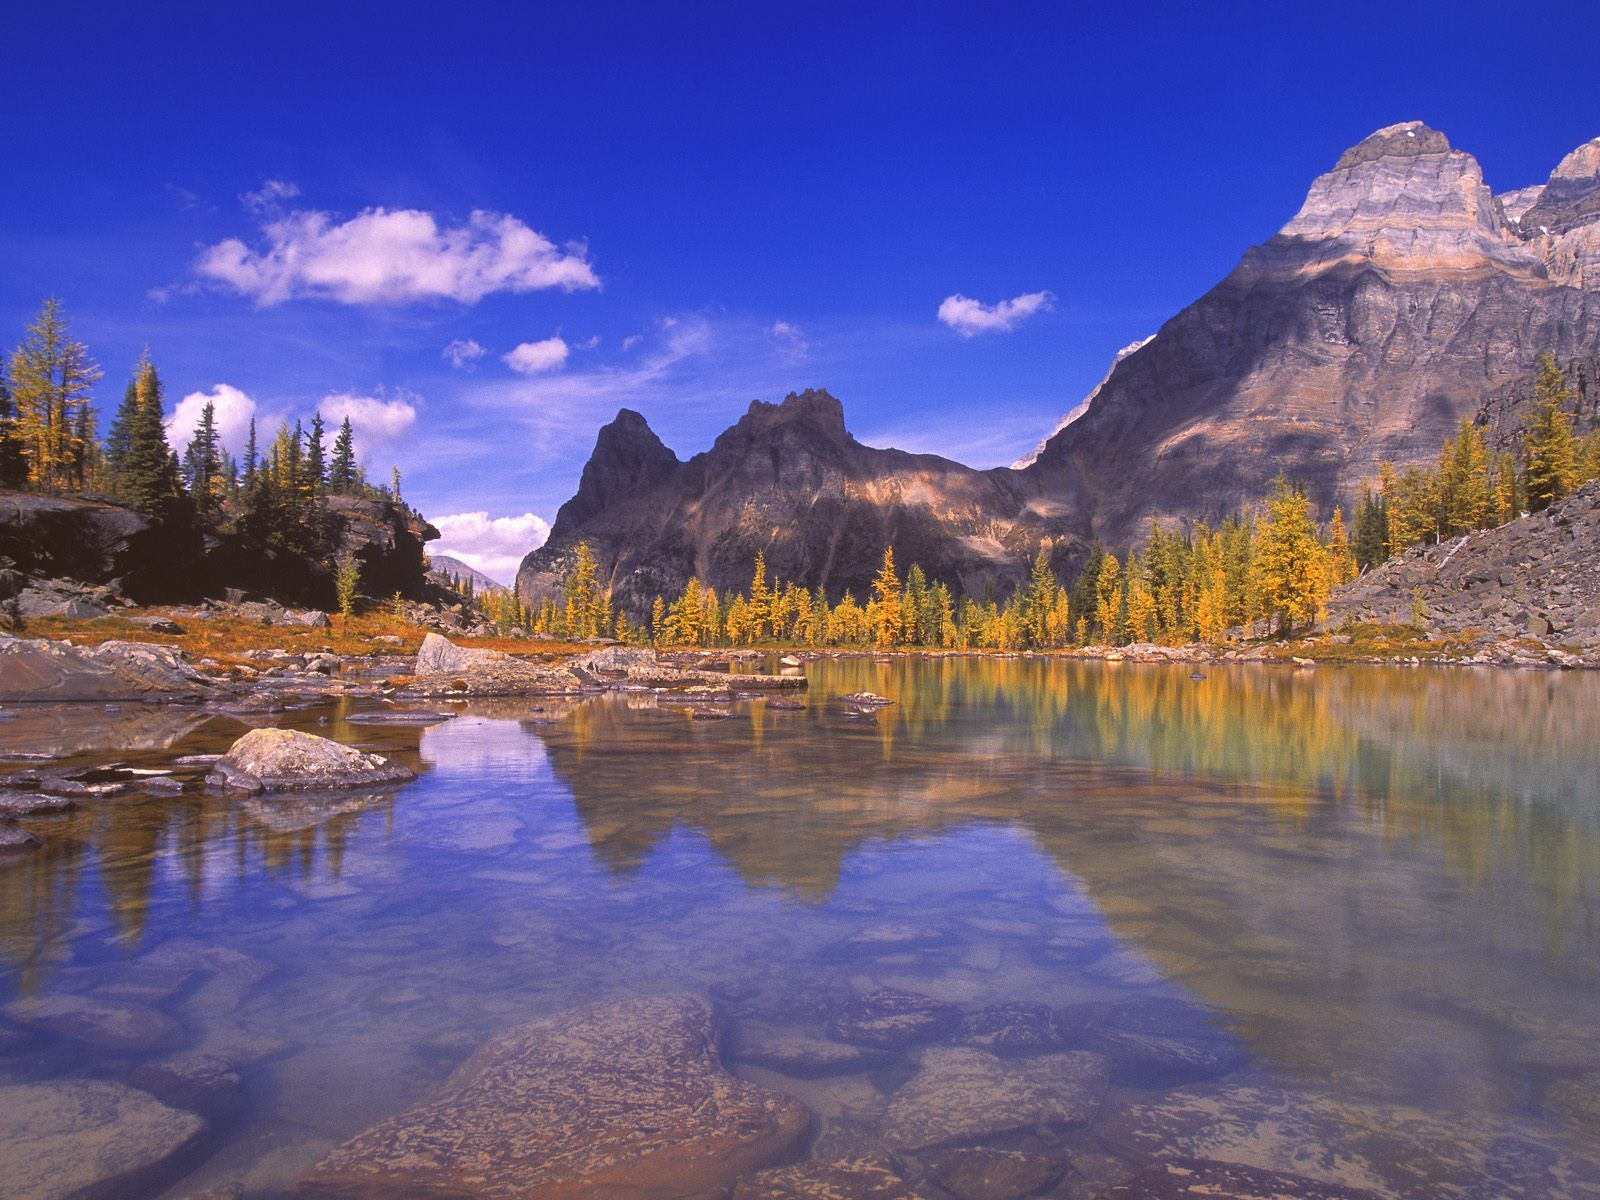 Yoho_National_Park_British_Columbia_Canada